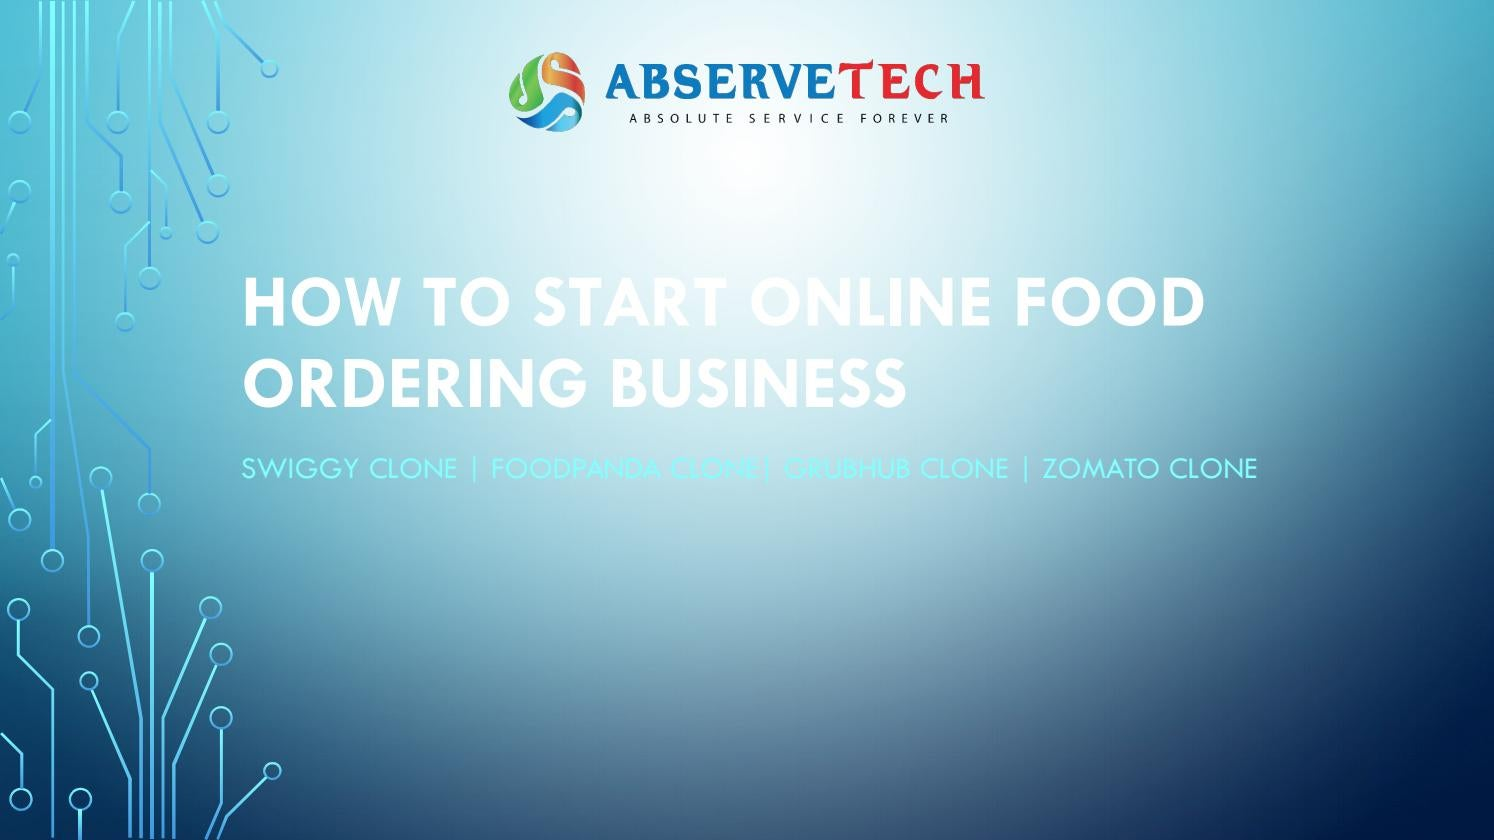 How to start online food ordering business by Abserve Tech